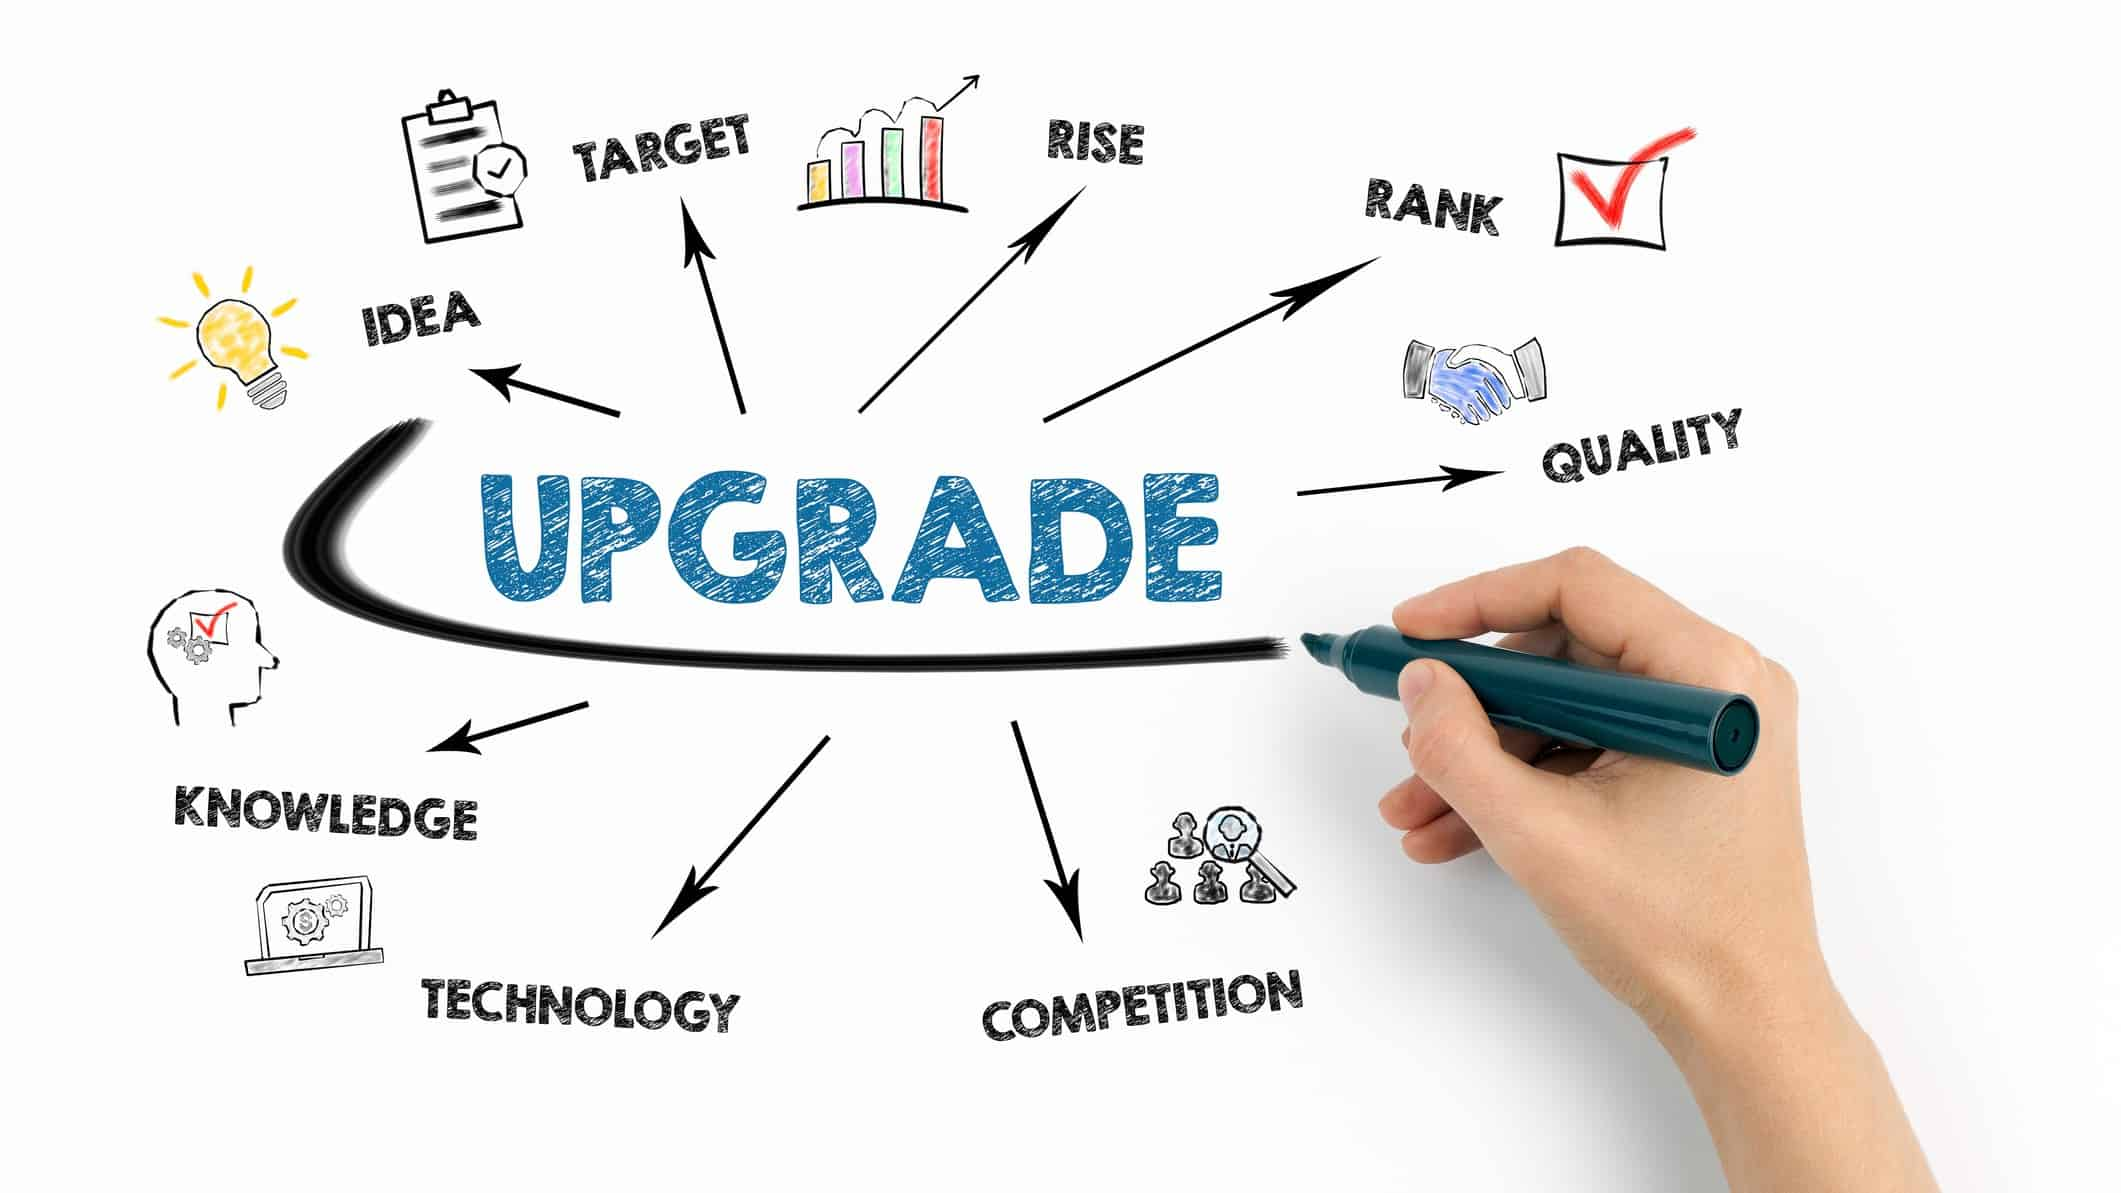 asx 200 share price upgrade to buy represented by hand drawing line under the word upgrade